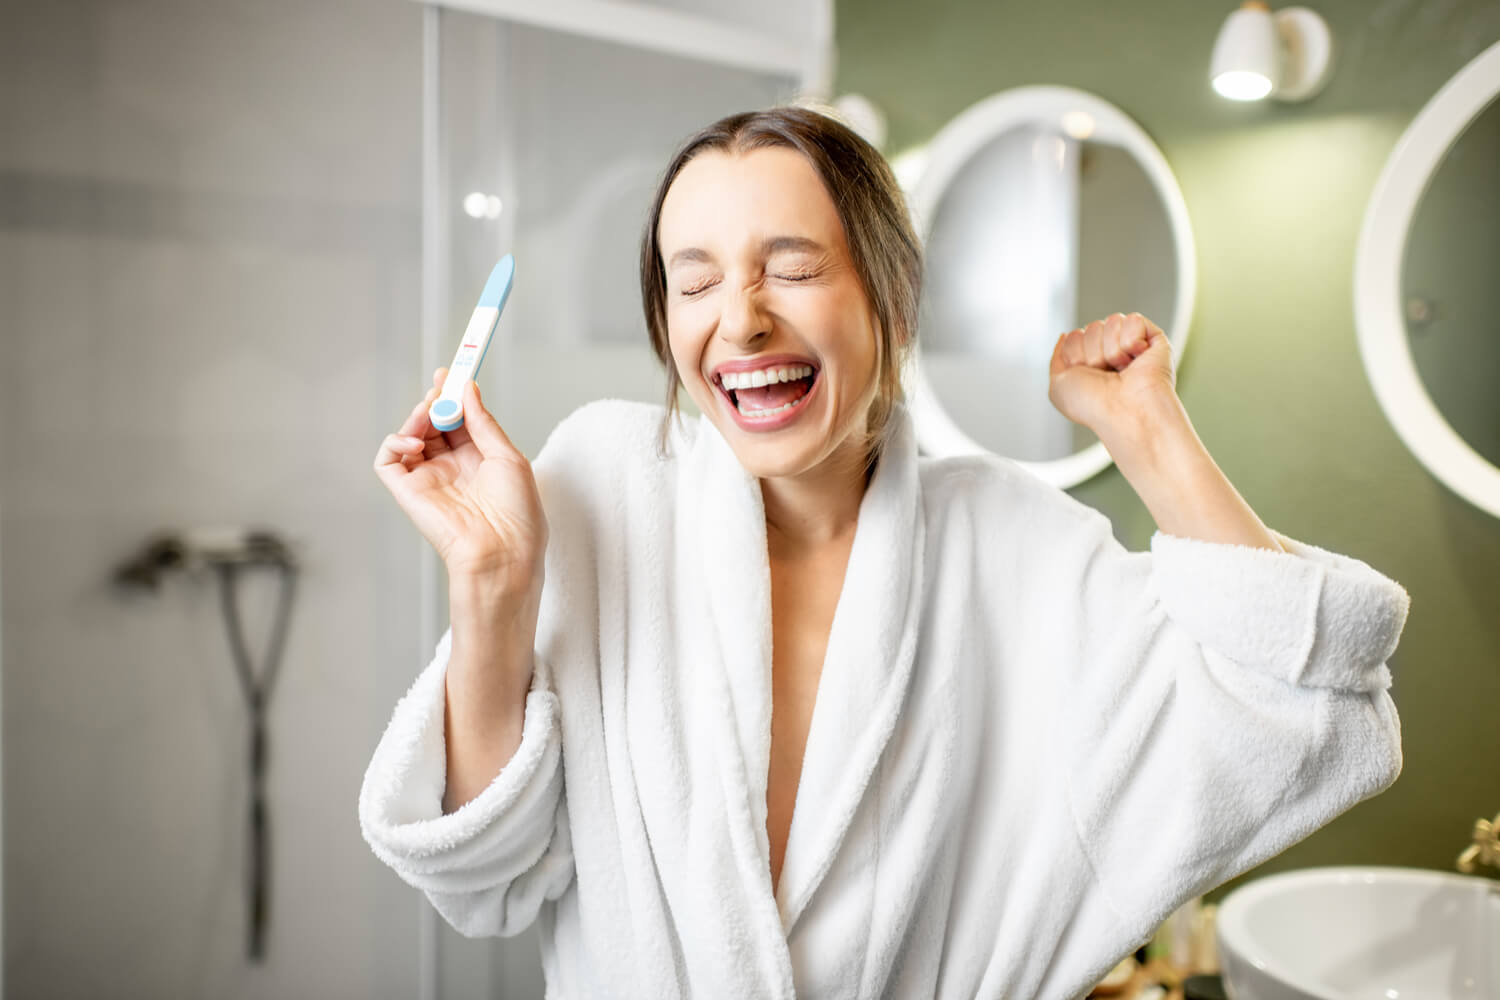 women happy after checking pregnancy result on test kit